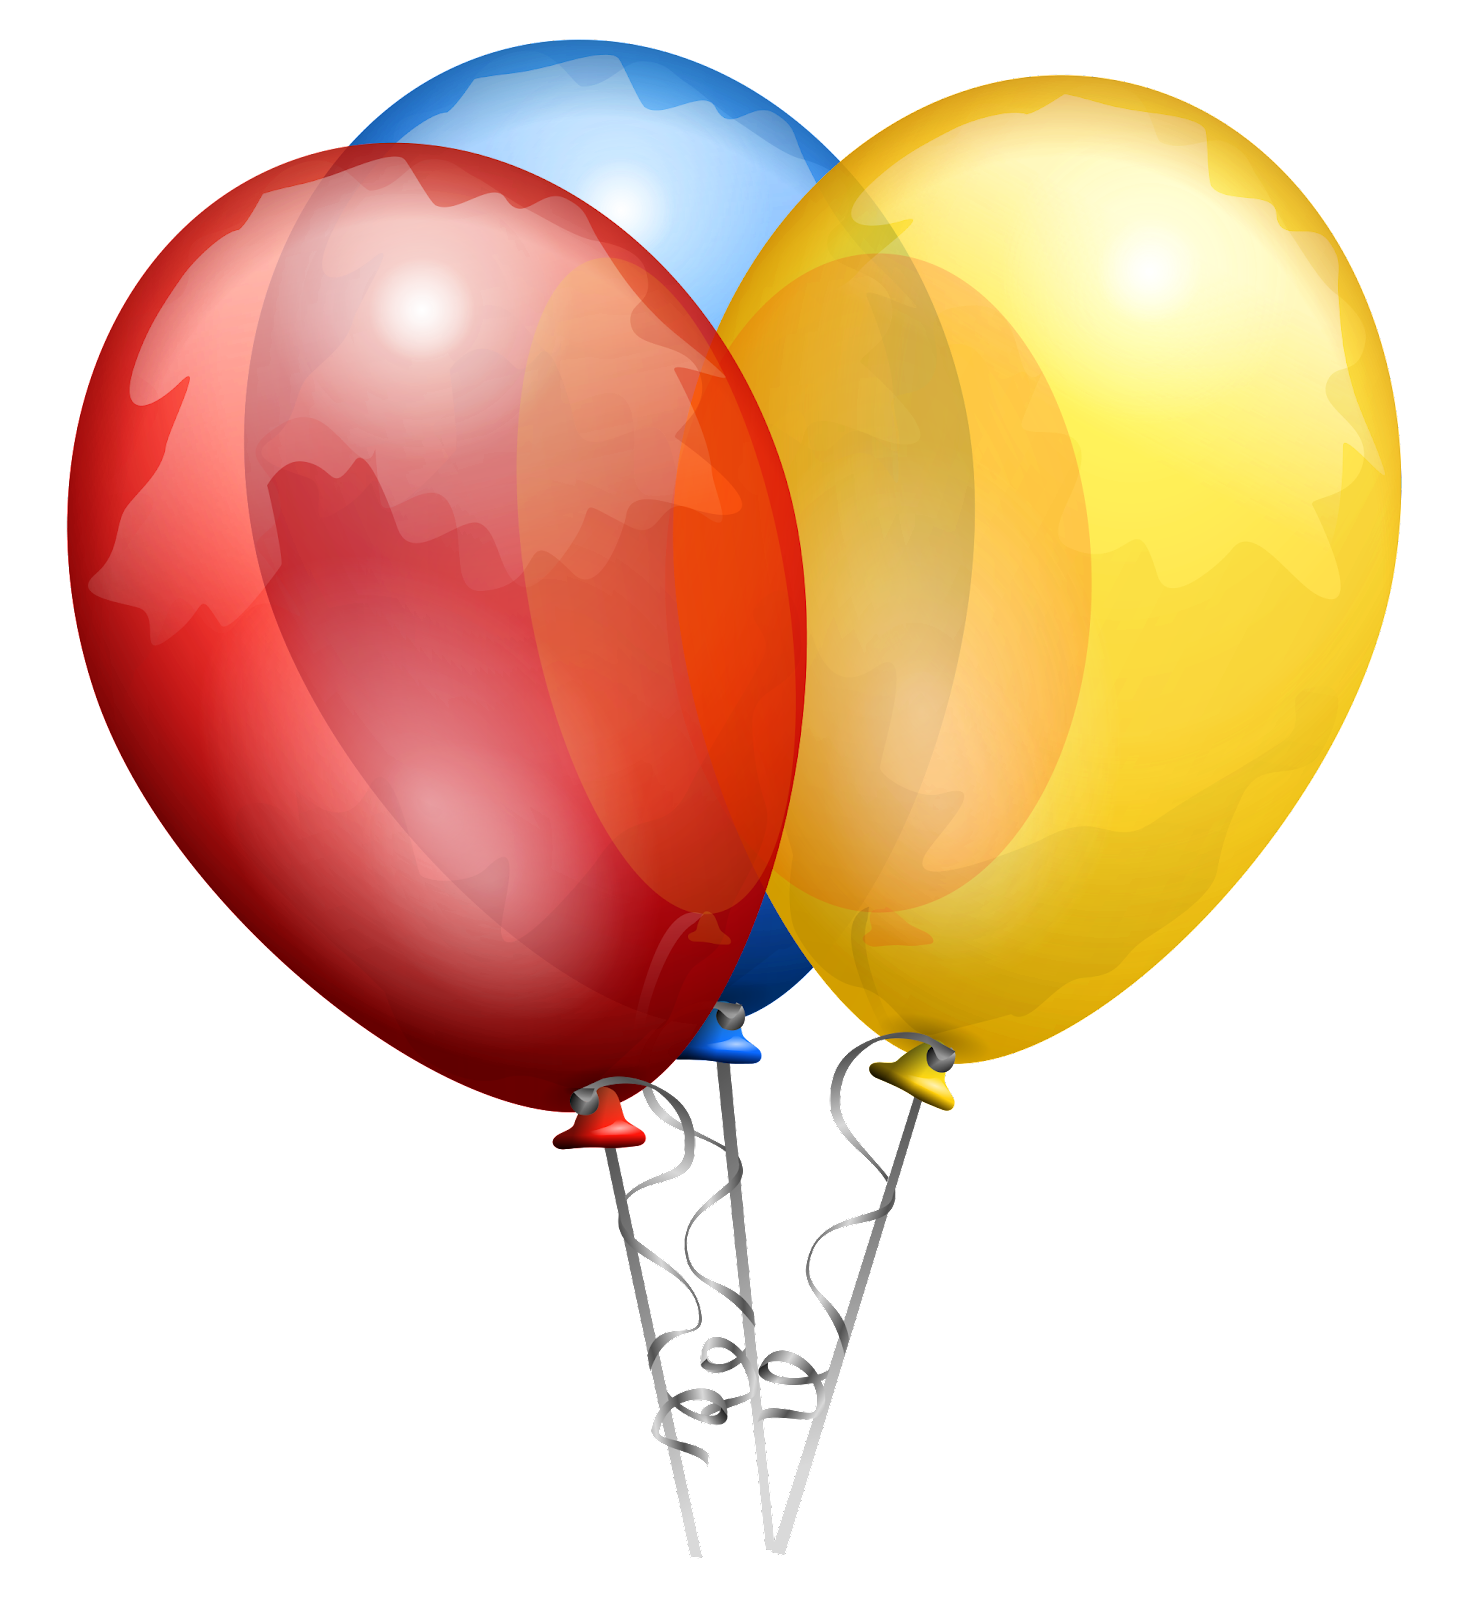 File:Balloons-aj.svg - Wikimedia Commons